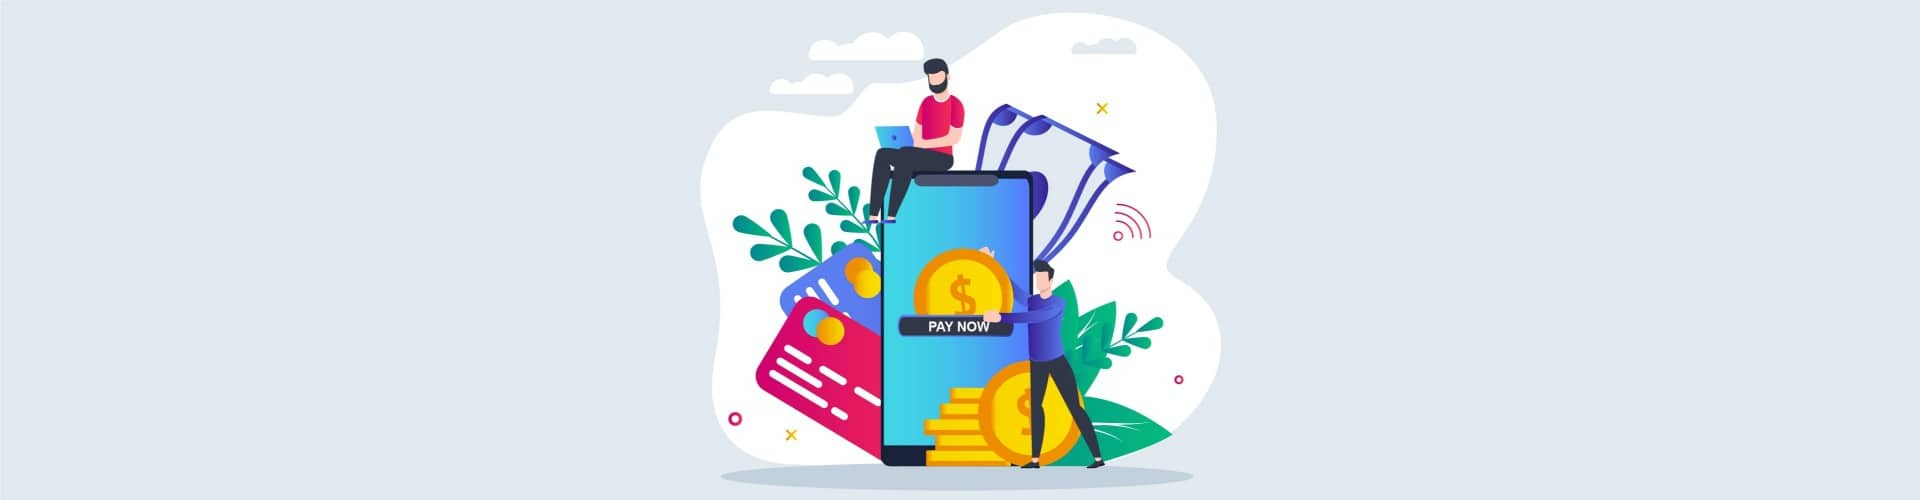 What is Mobile Banking? Advantages and Disadvantages of Mobile Banking